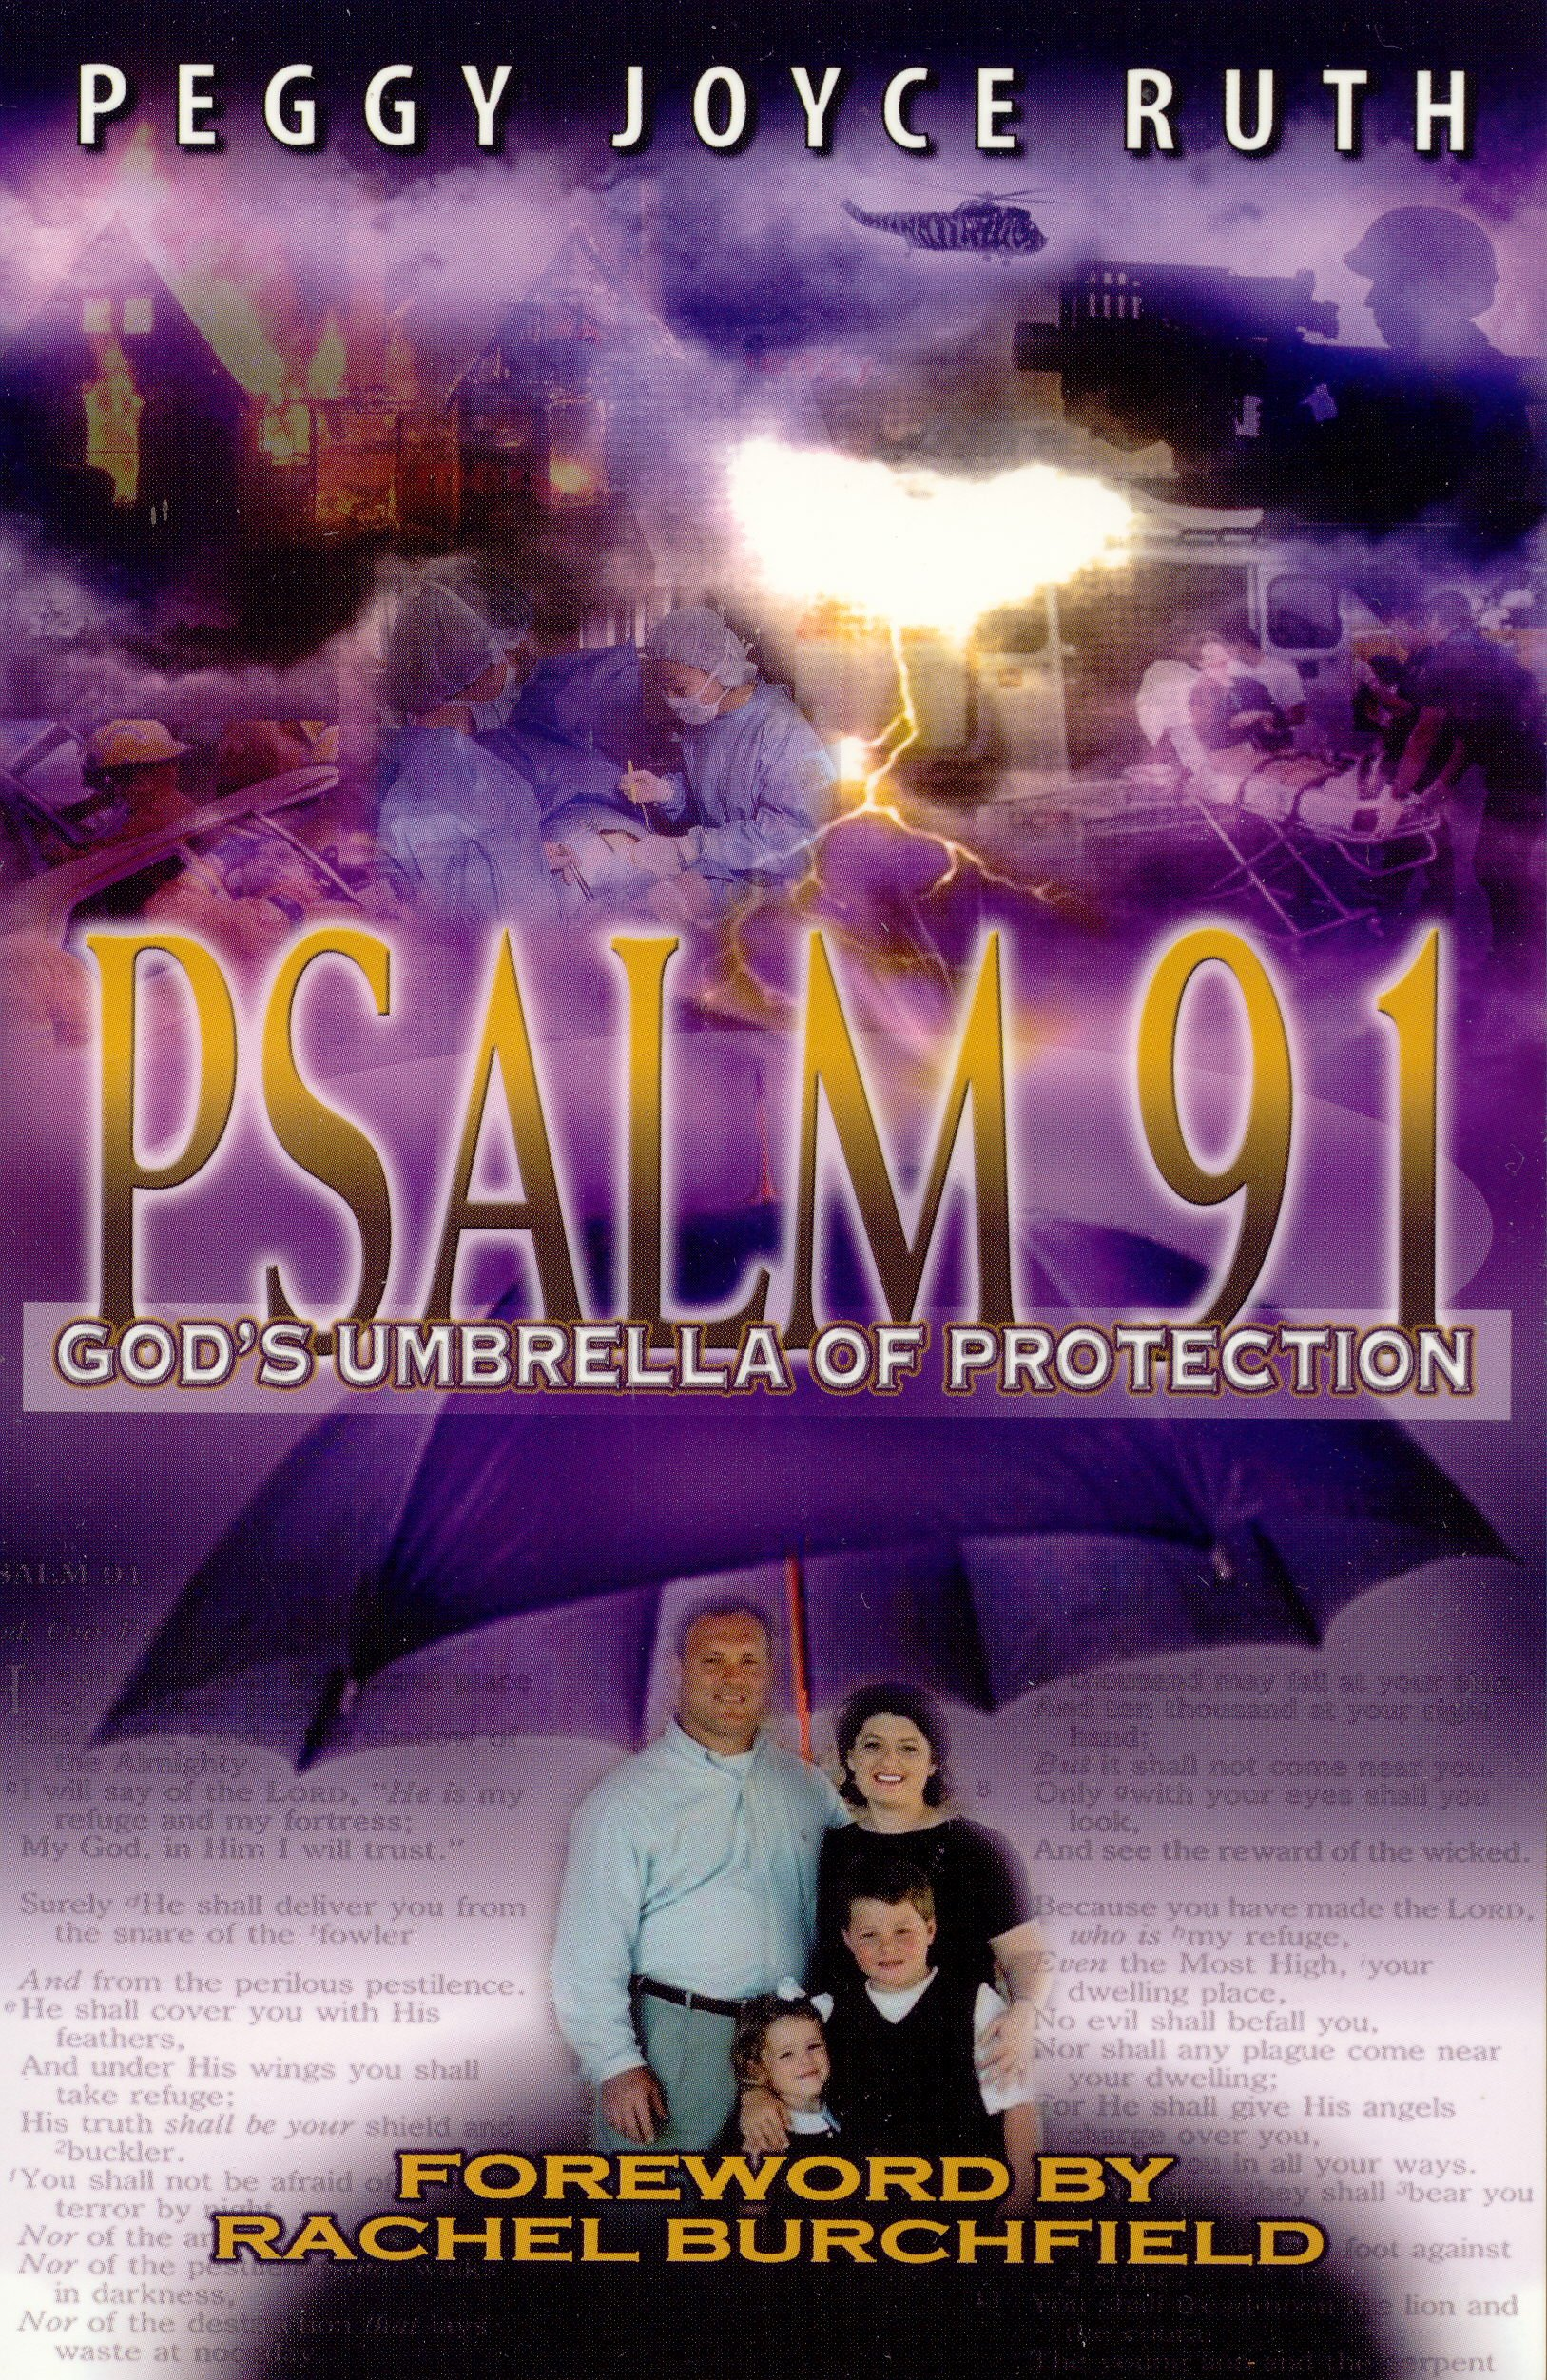 Psalm 91: God's Umbrella of Protection: Peggy Joyce Ruth